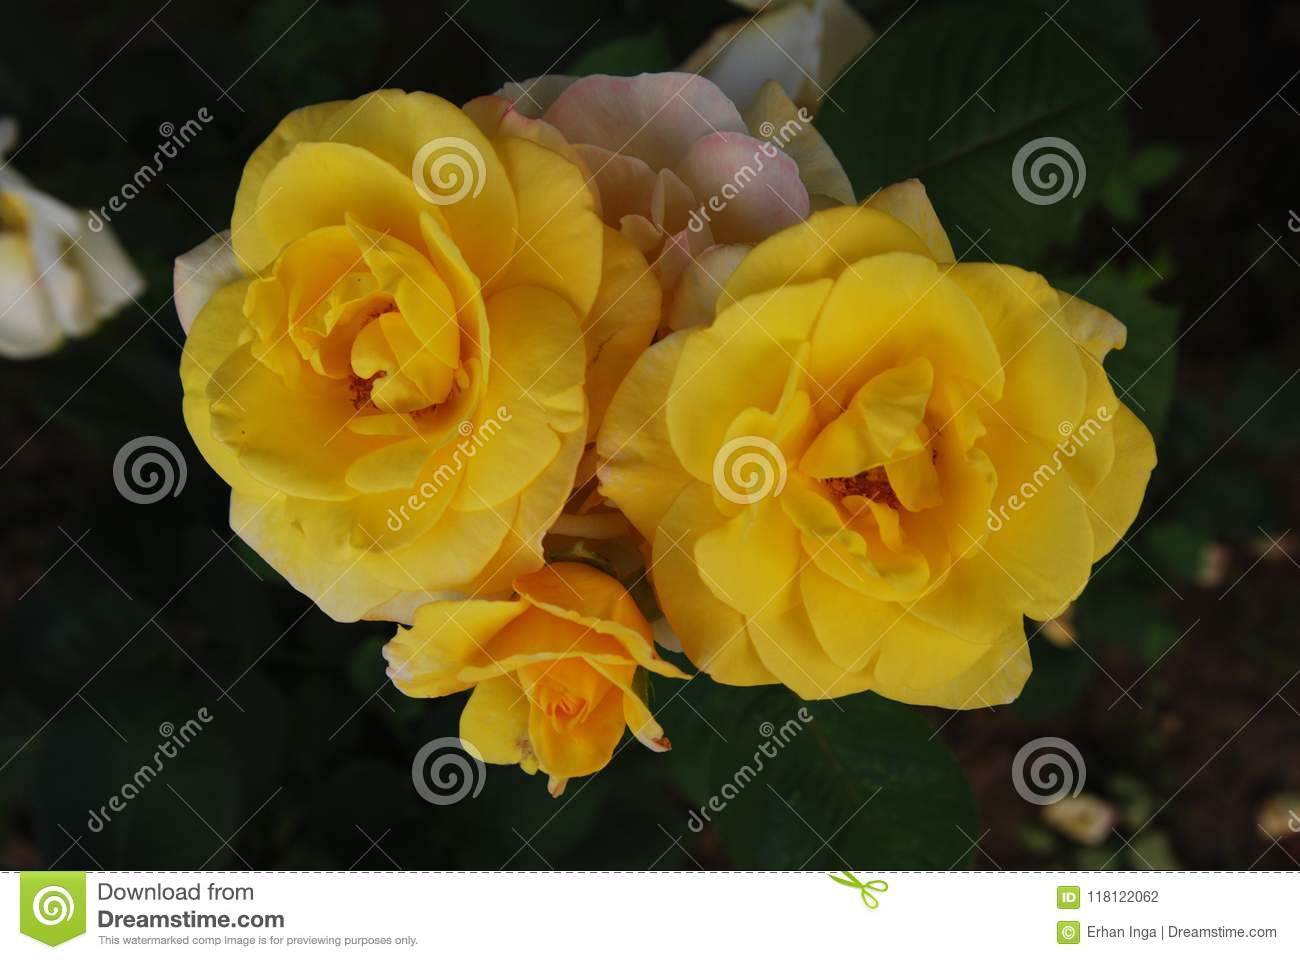 Yellow Roses Flowers Close up Bunch Garden Flowers Summer Time